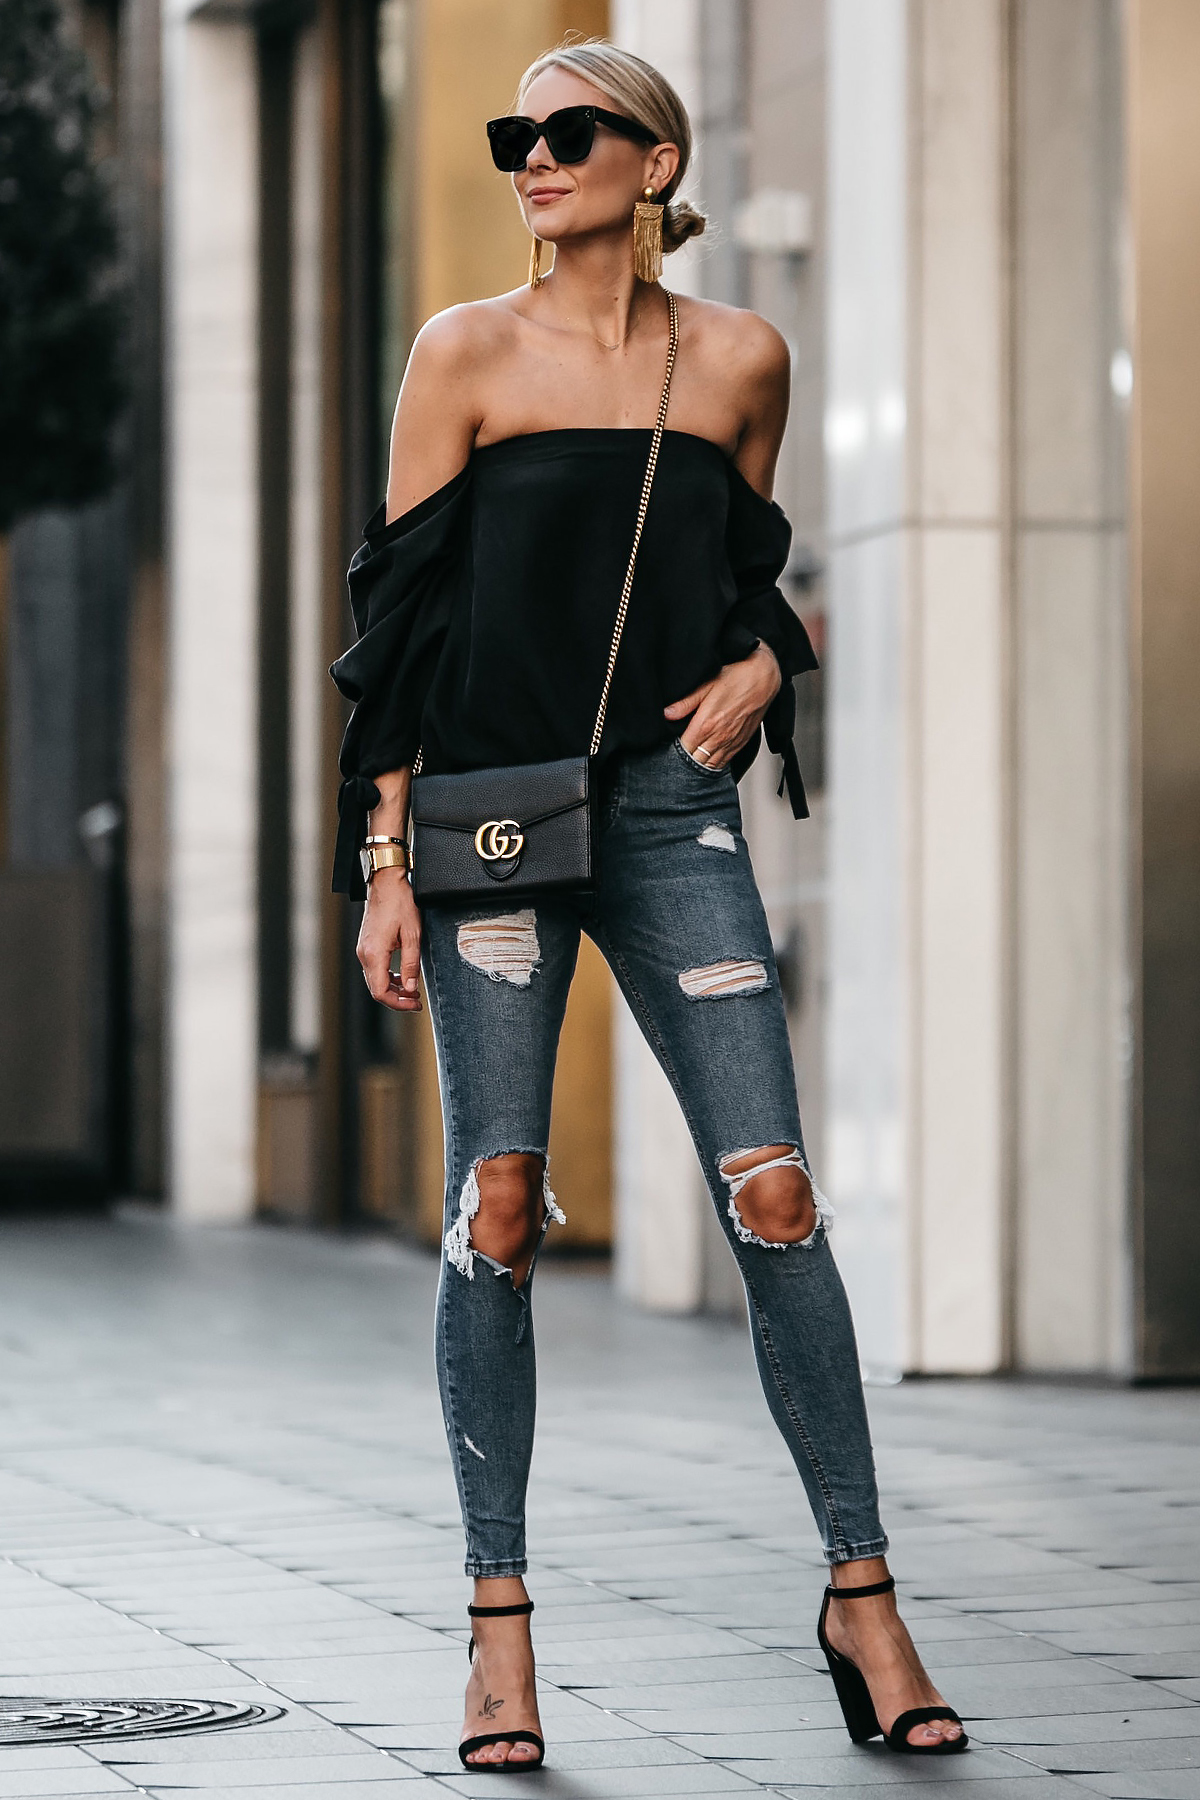 Blonde Woman Wearing Club Monaco Black Off-the-Shoulder Top Denim Ripped Skinny Jeans Outfit Black Ankle Strap Heels Gucci Marmont Handbag